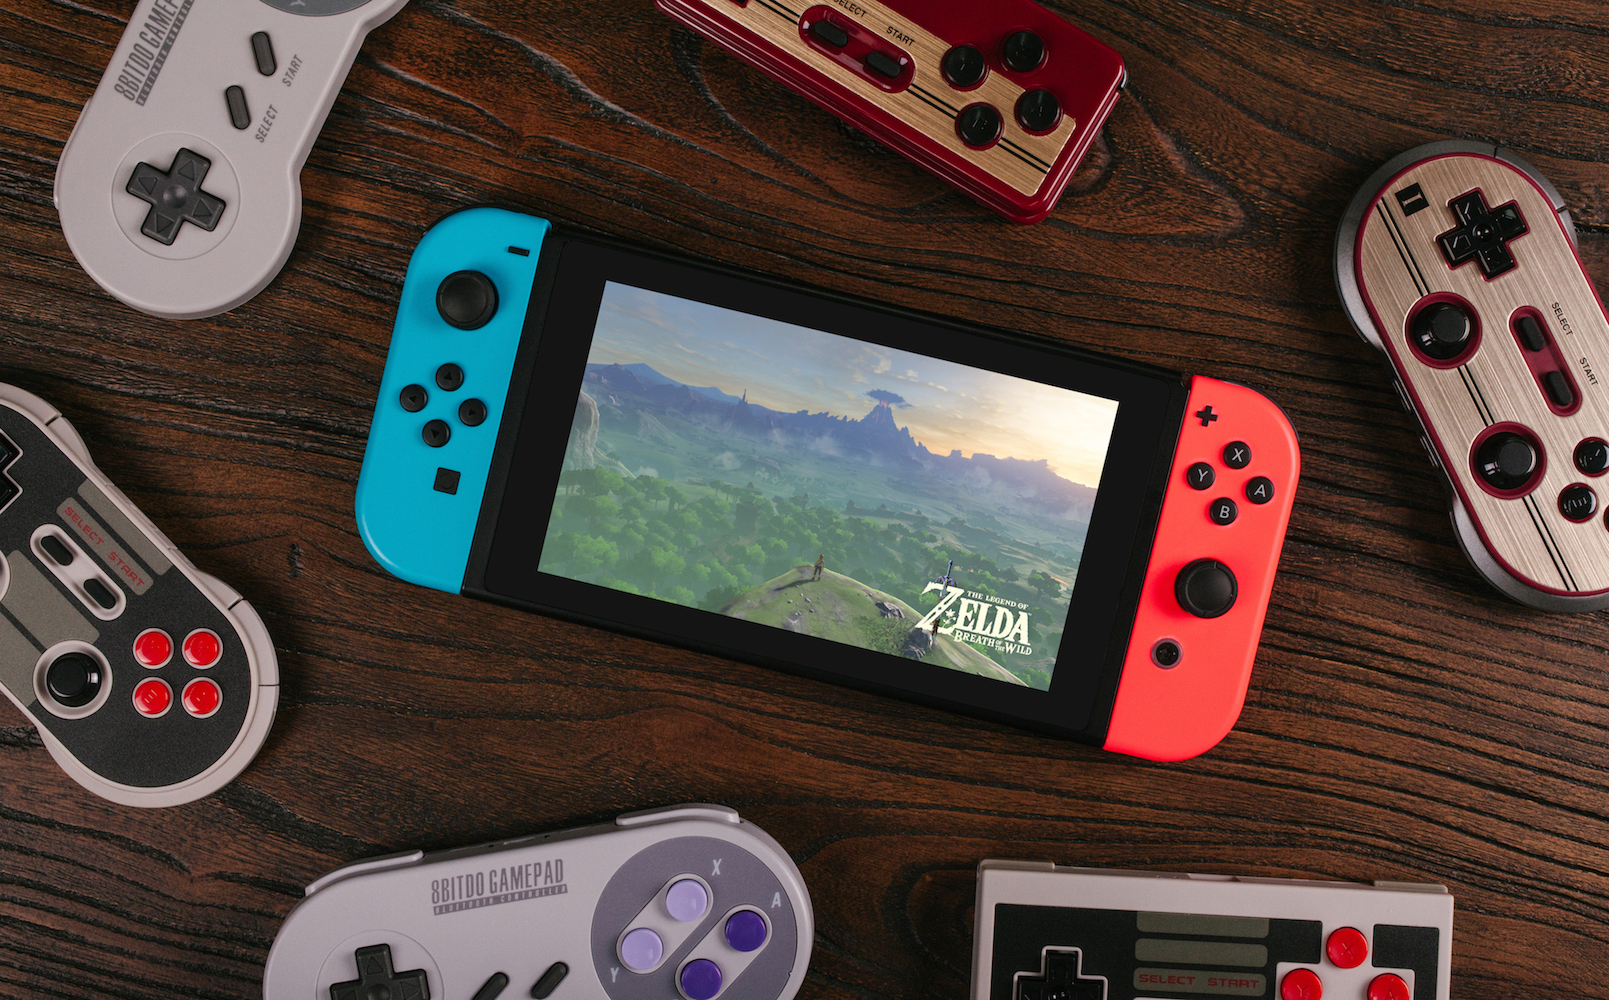 8bitdo Nintendo Switch Christopher Taber Console With Zelda Bow 1 2